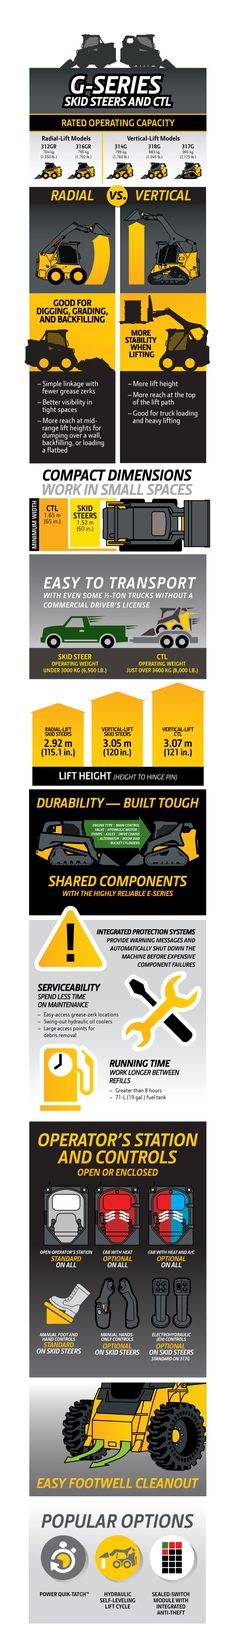 An infographic details the specifics and benefits of the new G-Series Skid Steers and CTL